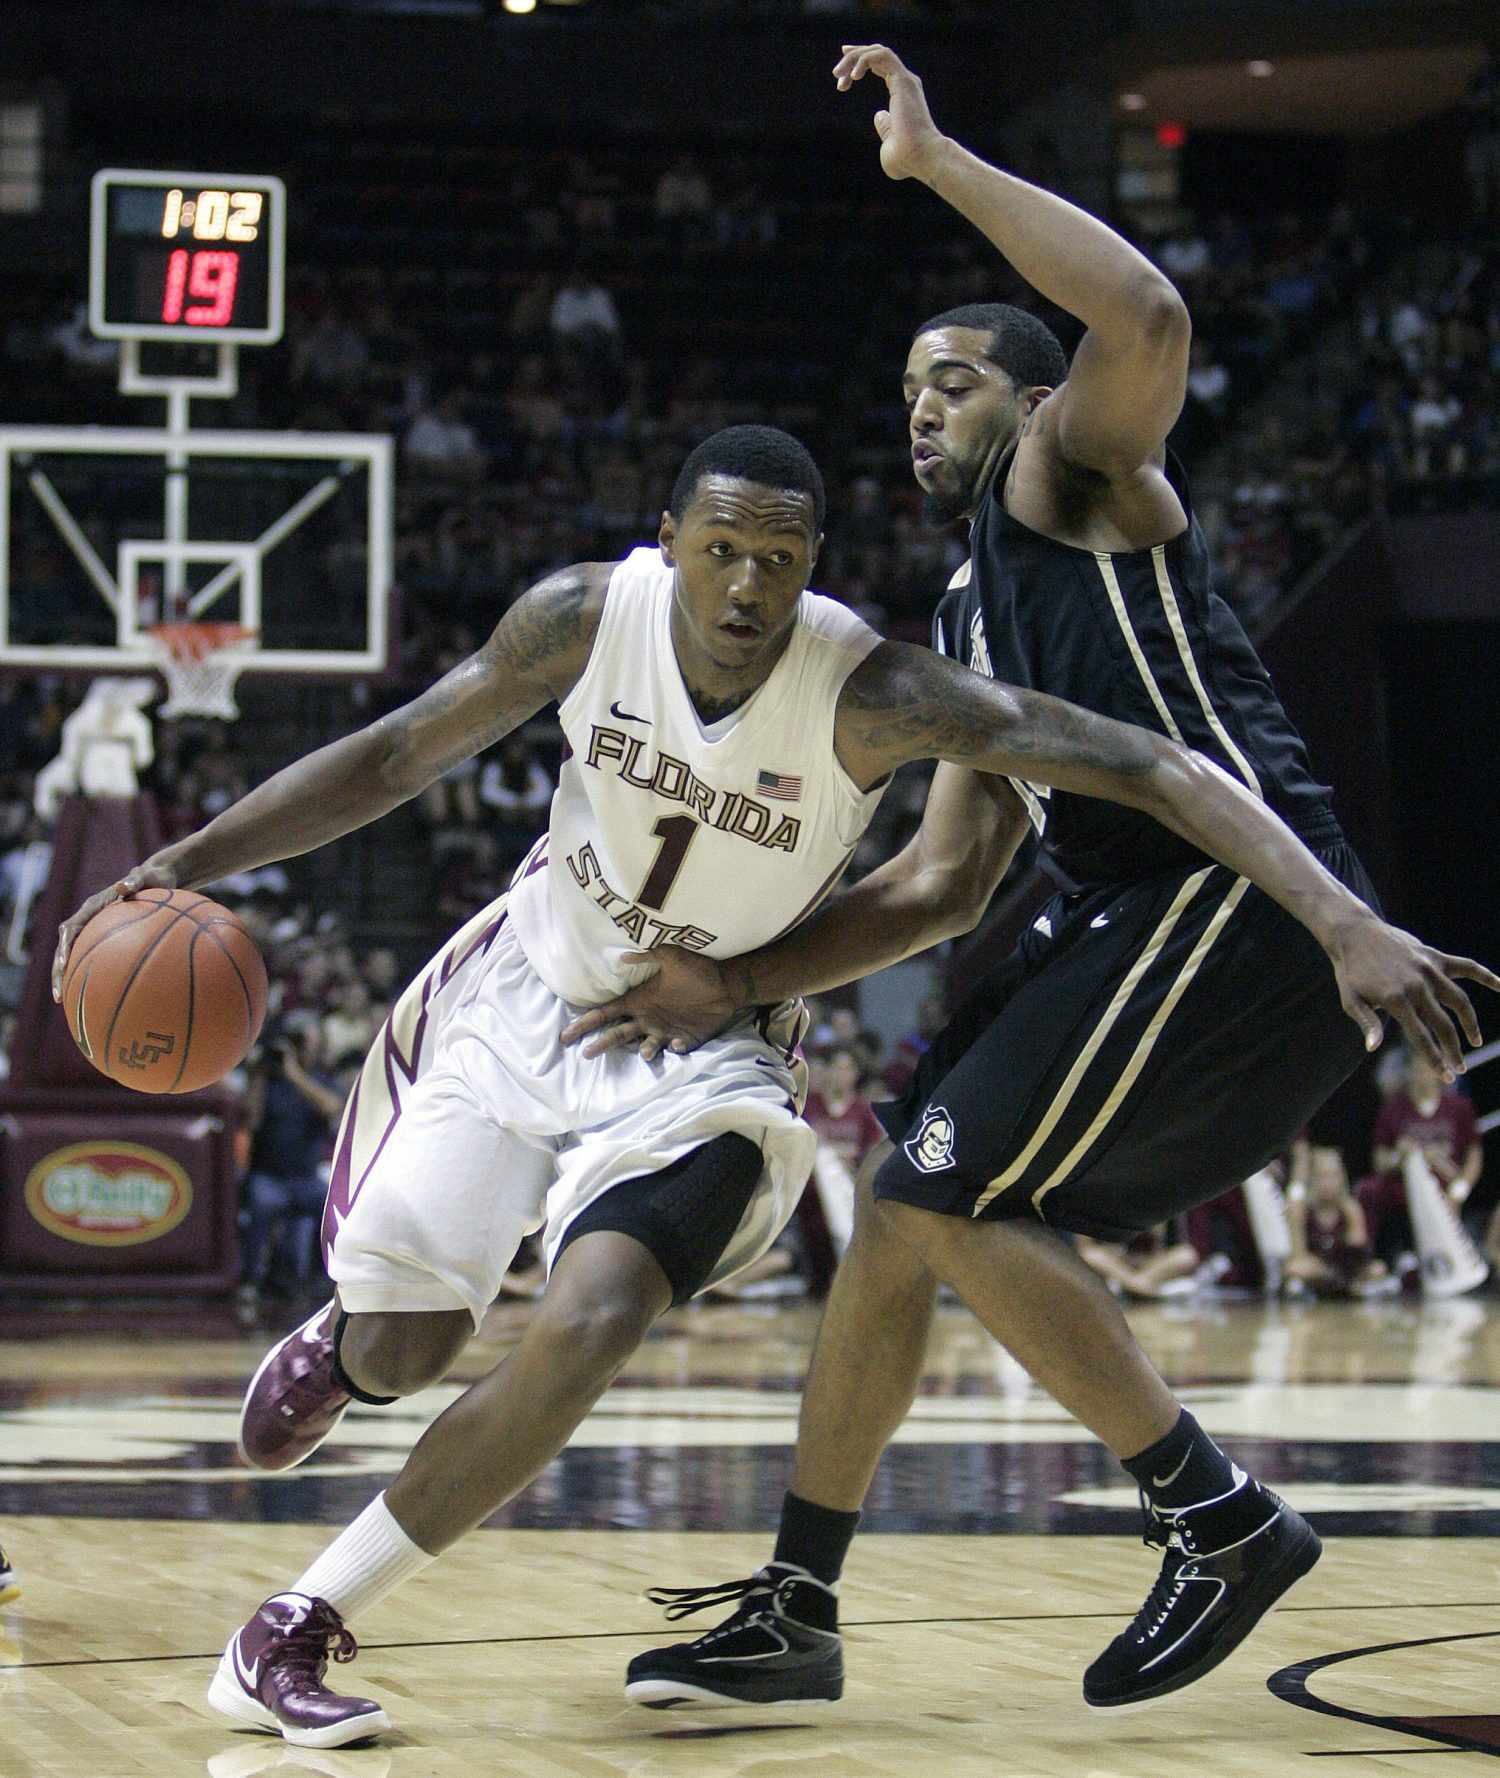 Florida State's Xavier Gibson drives against the defense of  Central Florida's Dwight McCombs in the first half of an NCAA college basketball game which Florida State won 73-50 on Monday, Nov. 14, 2011, in Tallahassee, Fla.(AP Photo/Steve Cannon)